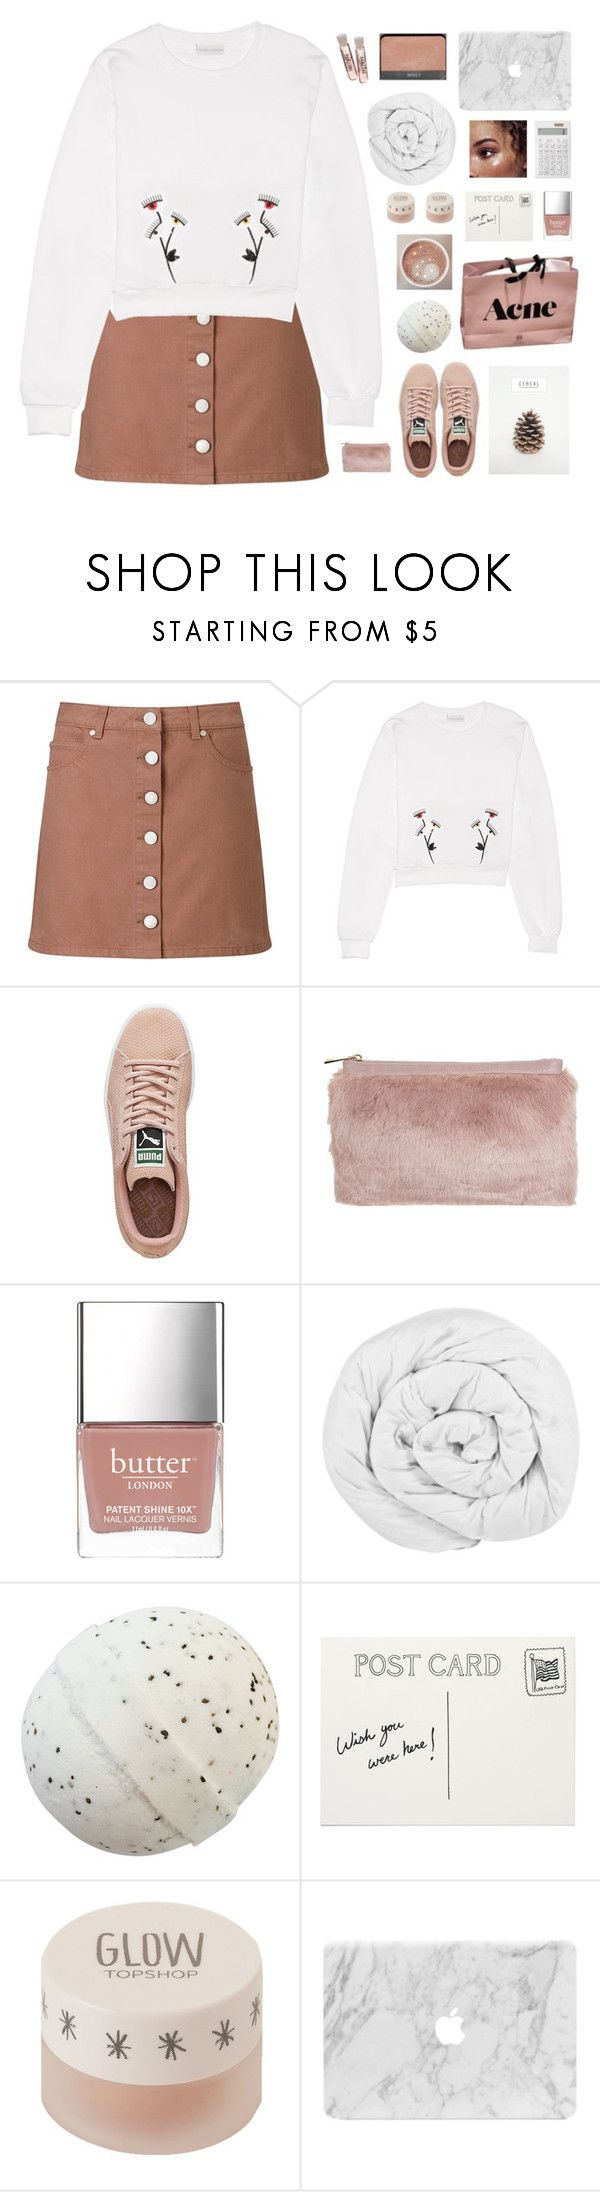 """「87.」"" by moonbeam-s ❤ liked on Polyvore featuring Miss Selfridge, Puma, Butter London, The Fine Bedding Company, Club Monaco, Topshop and Muji"